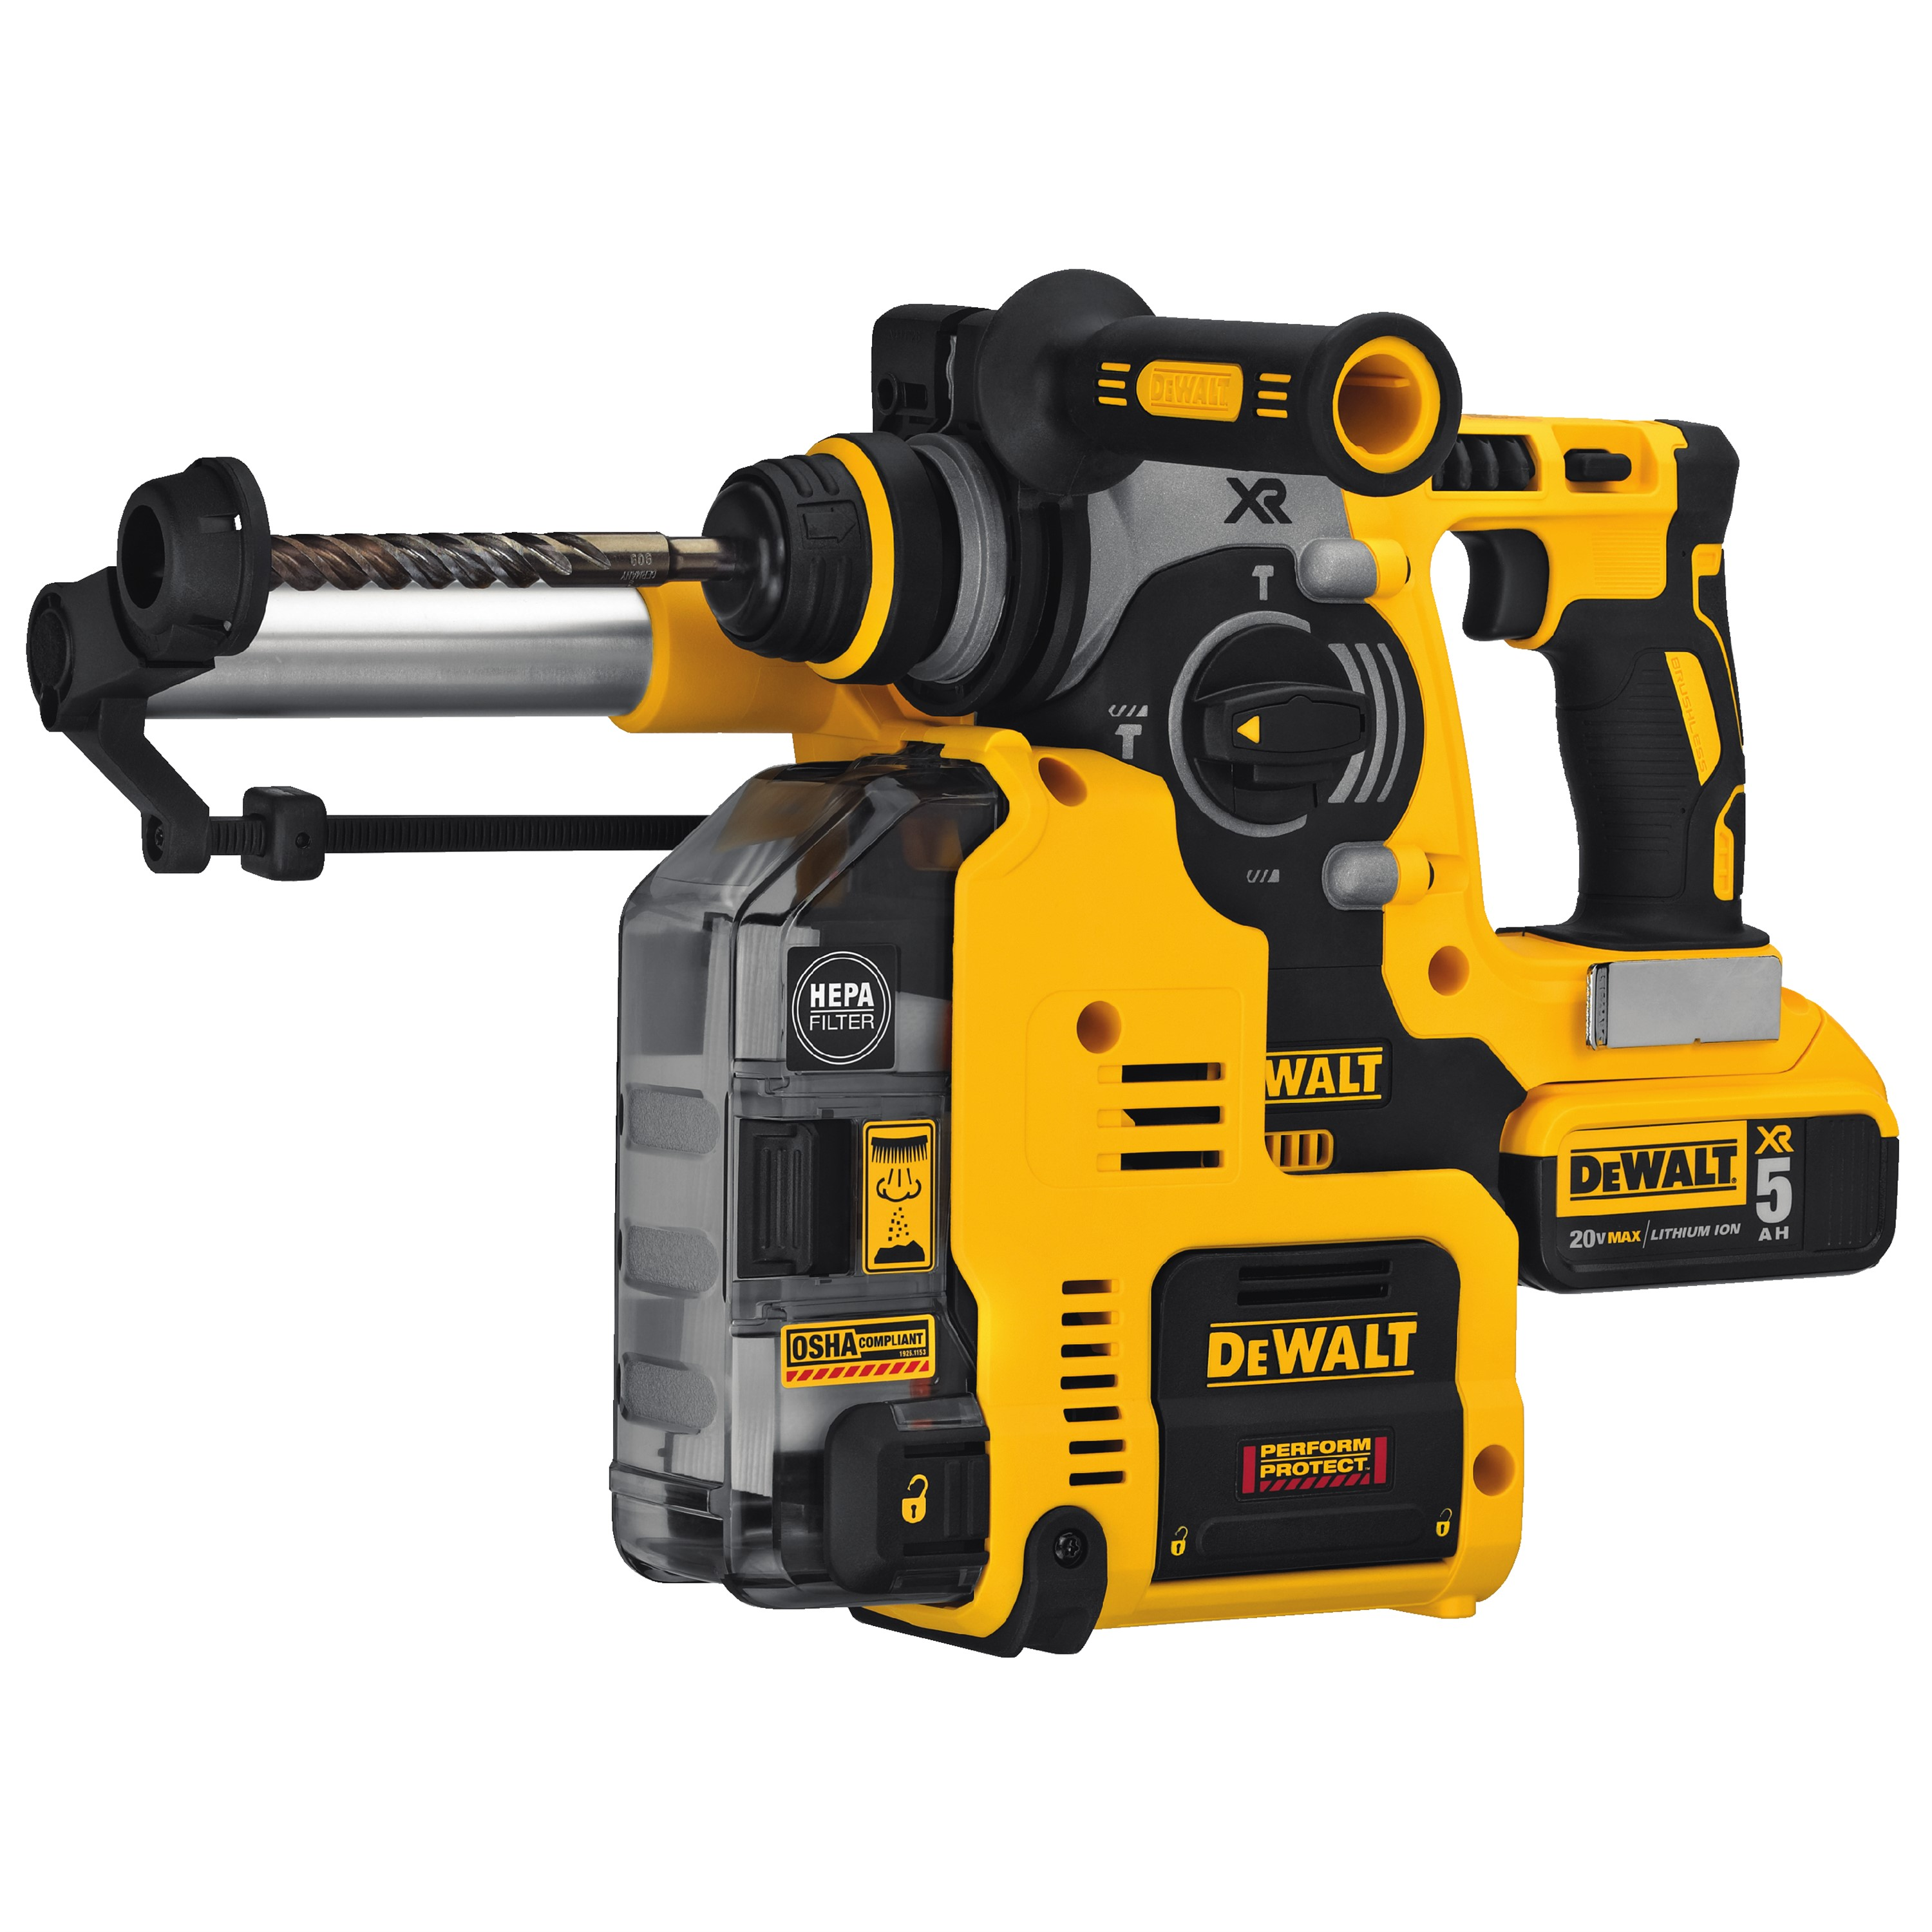 Cordless Tools Cordless Tools Lithium Ion Battery